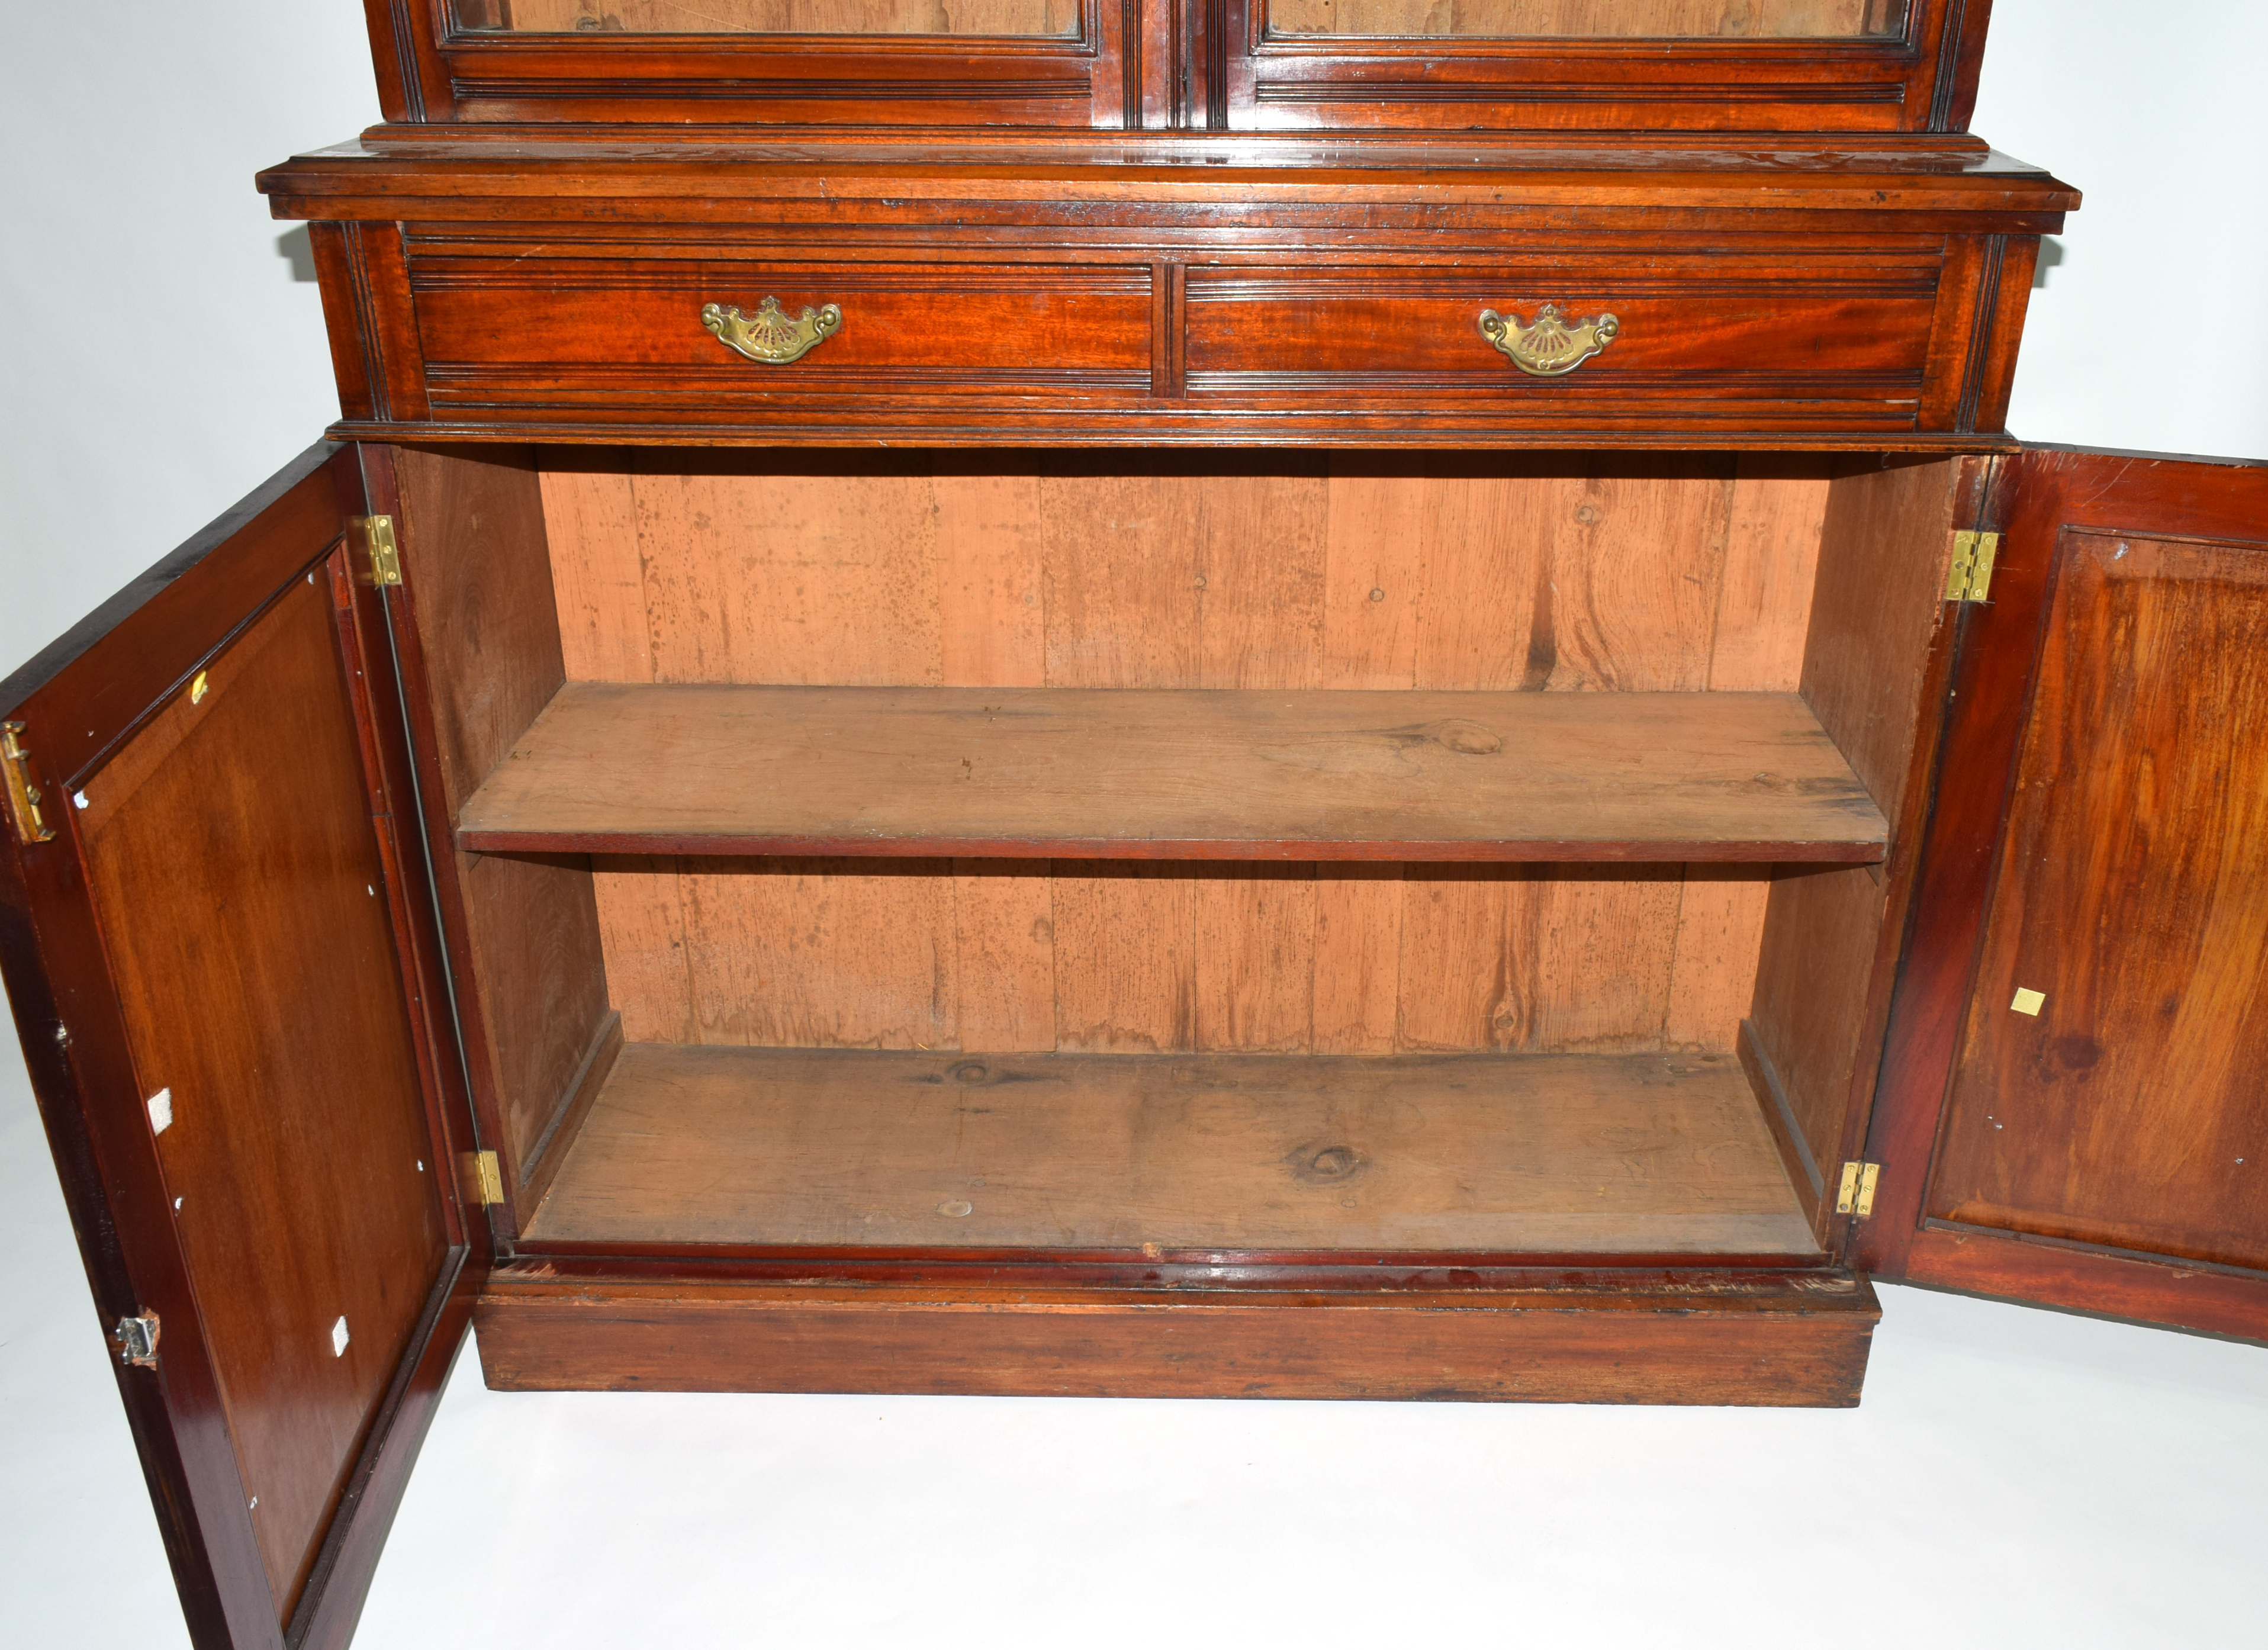 Full height mahogany side cabinet with glazed bookcase raised over double cupboard, width approx - Image 4 of 6